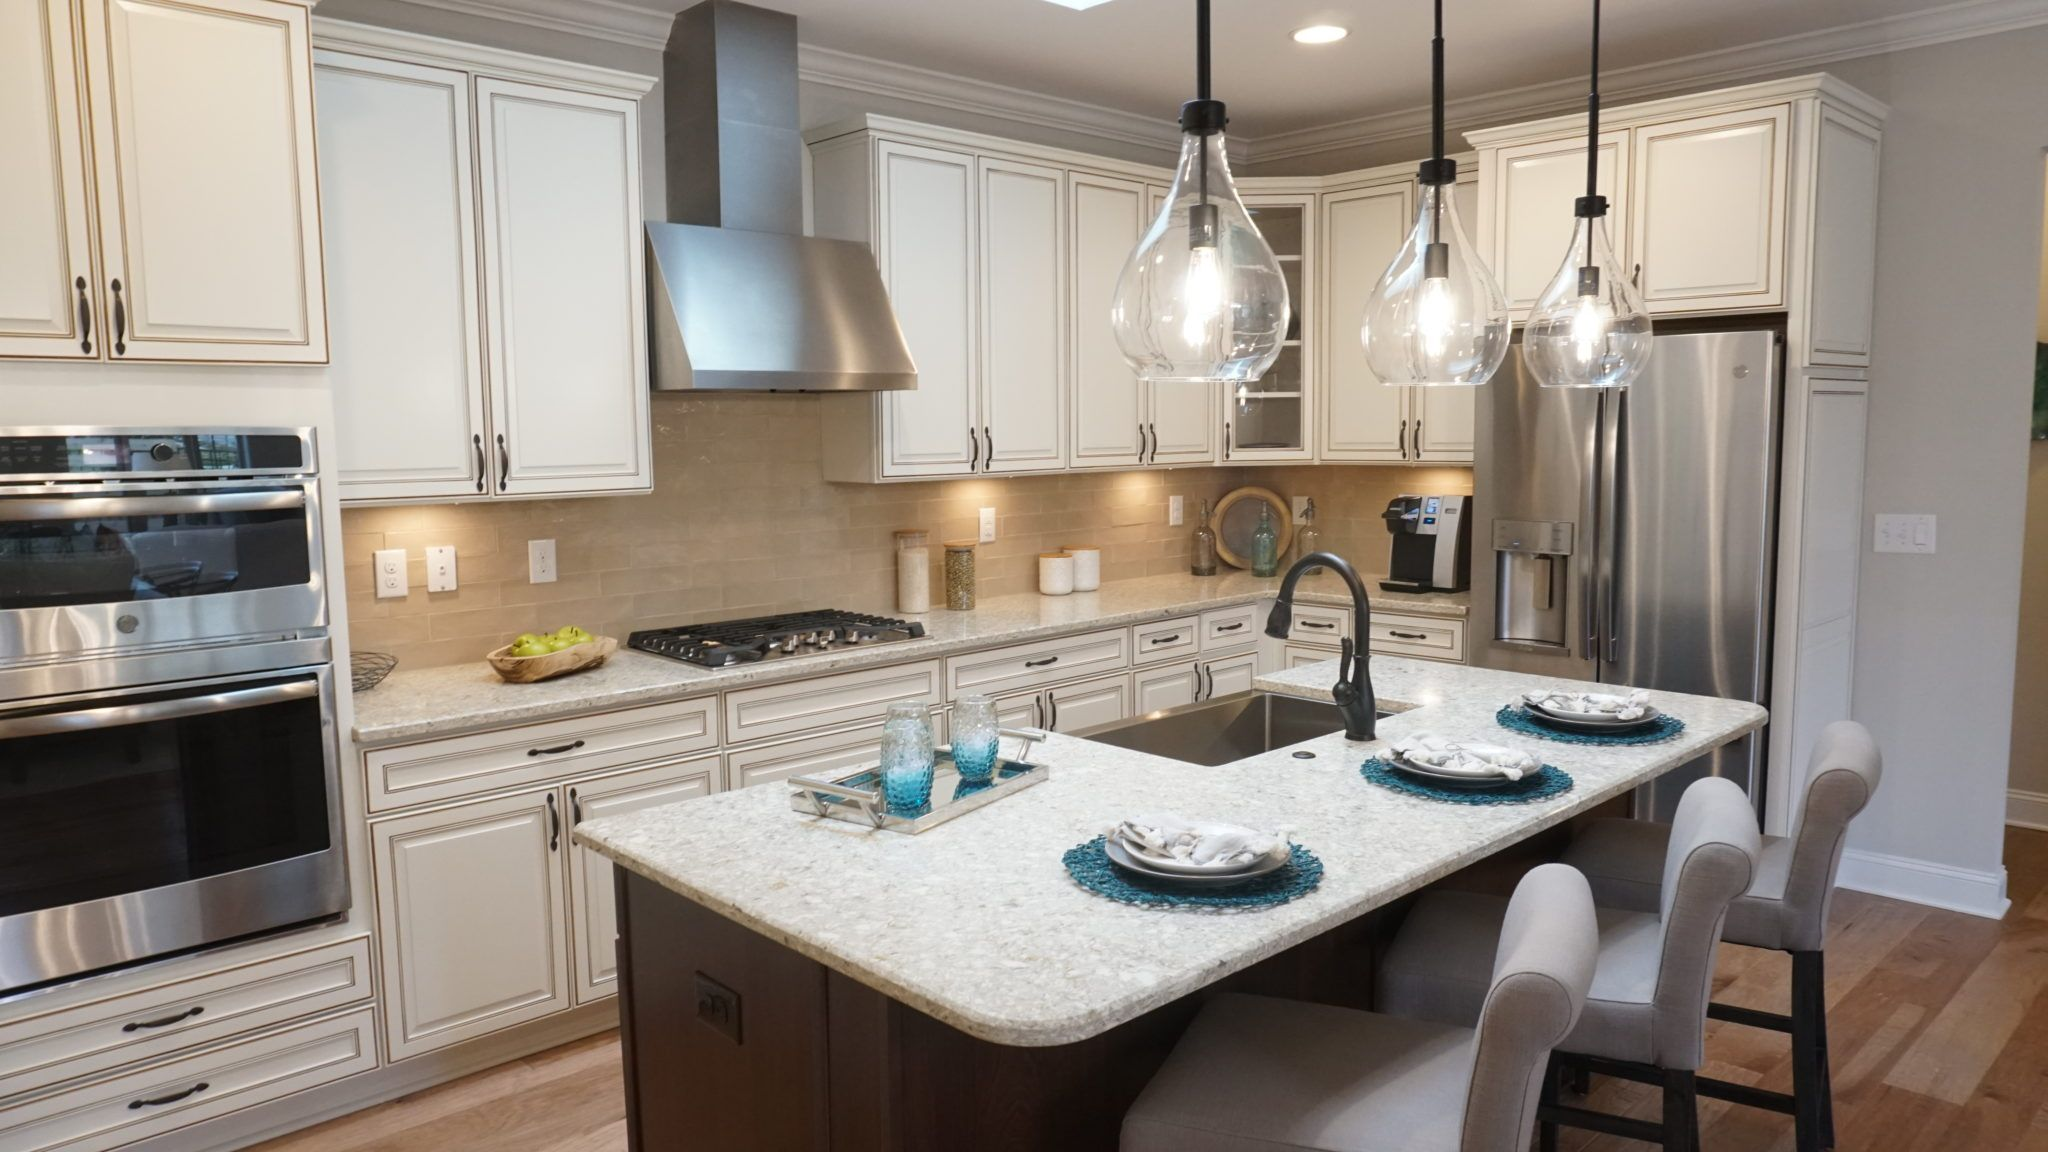 Kitchen featured in the Promenade III - Charlotte Corporate By Epcon Communities in Charlotte, NC